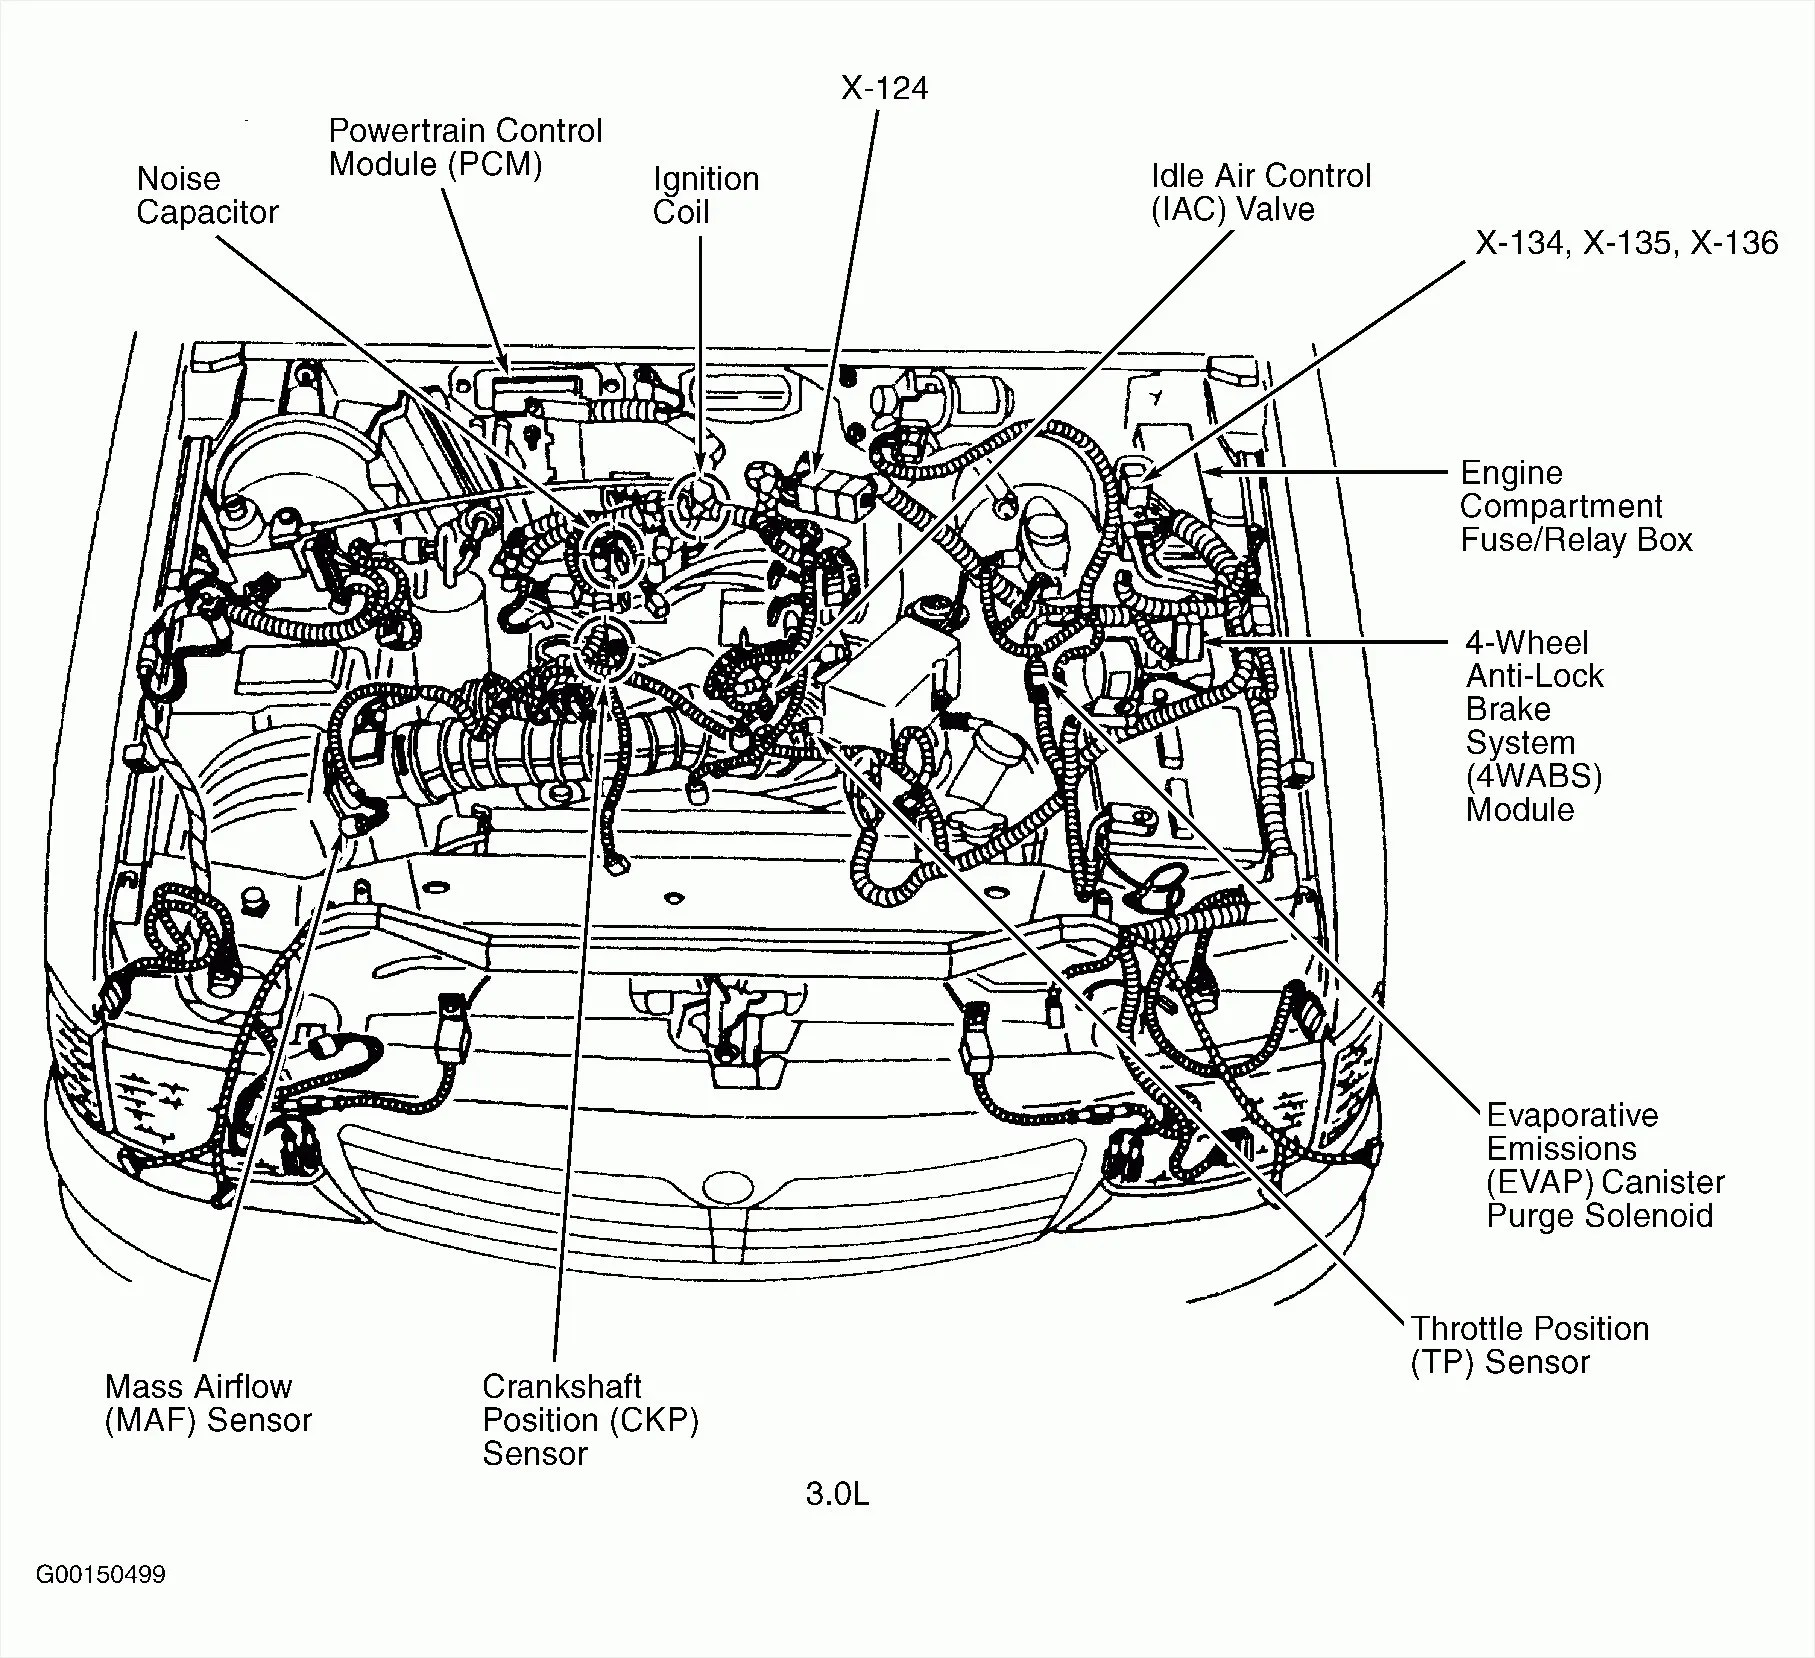 hight resolution of mazda e2000 wiring diagram wiring diagram week 2003 mazda e2000 wiring diagram mazda e2000 wiring diagram